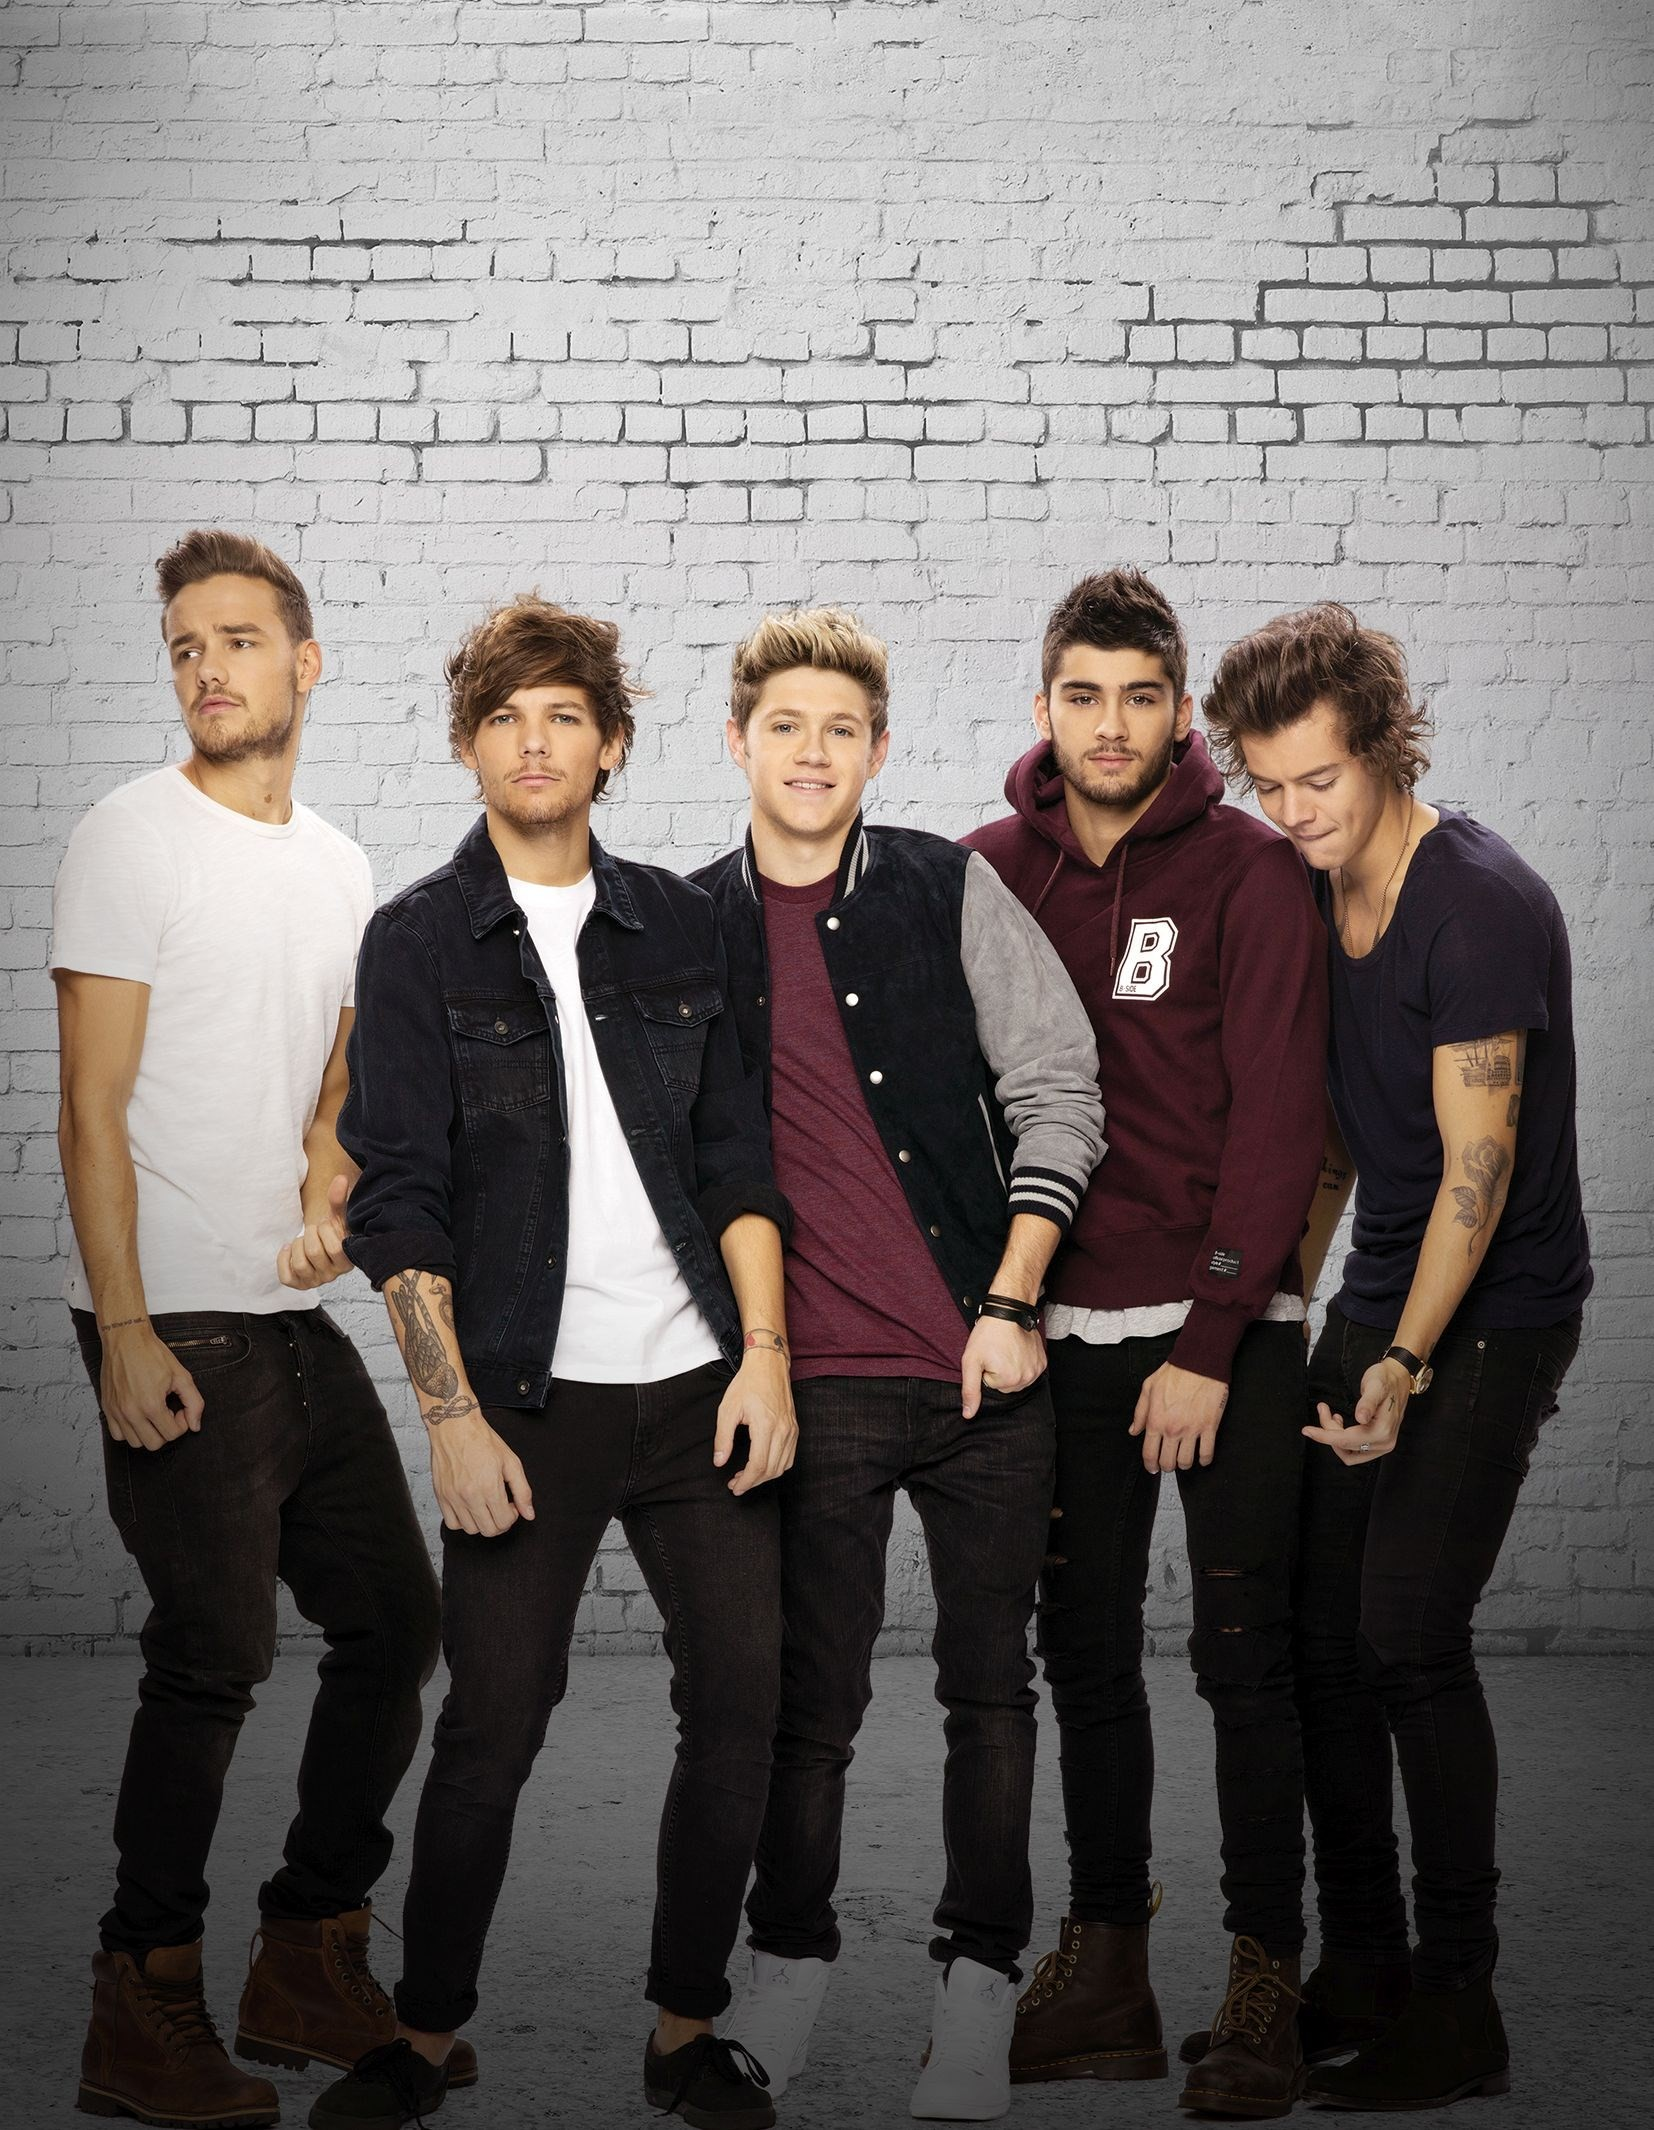 One Direction Wallpaper Iphone Data Src Iphone Wallpaper One Direction 1654x2130 Download Hd Wallpaper Wallpapertip